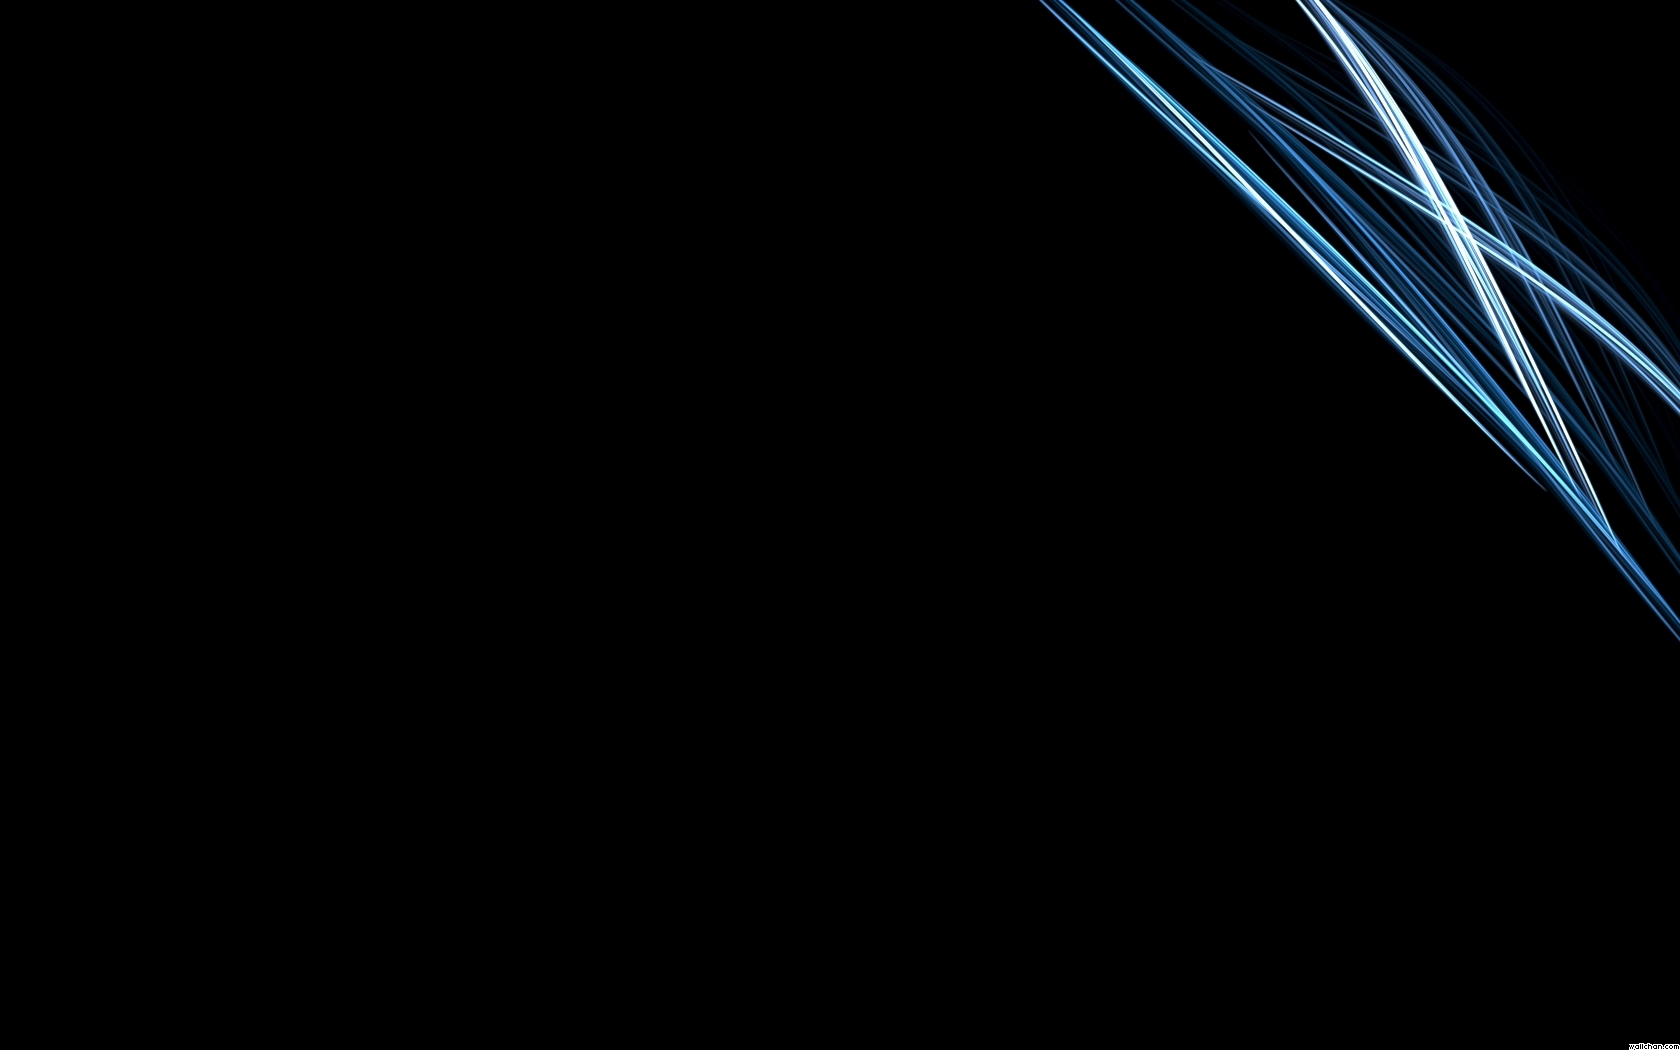 black blue abstract wallpaper 2597 hd wallpapersjpg 1680x1050